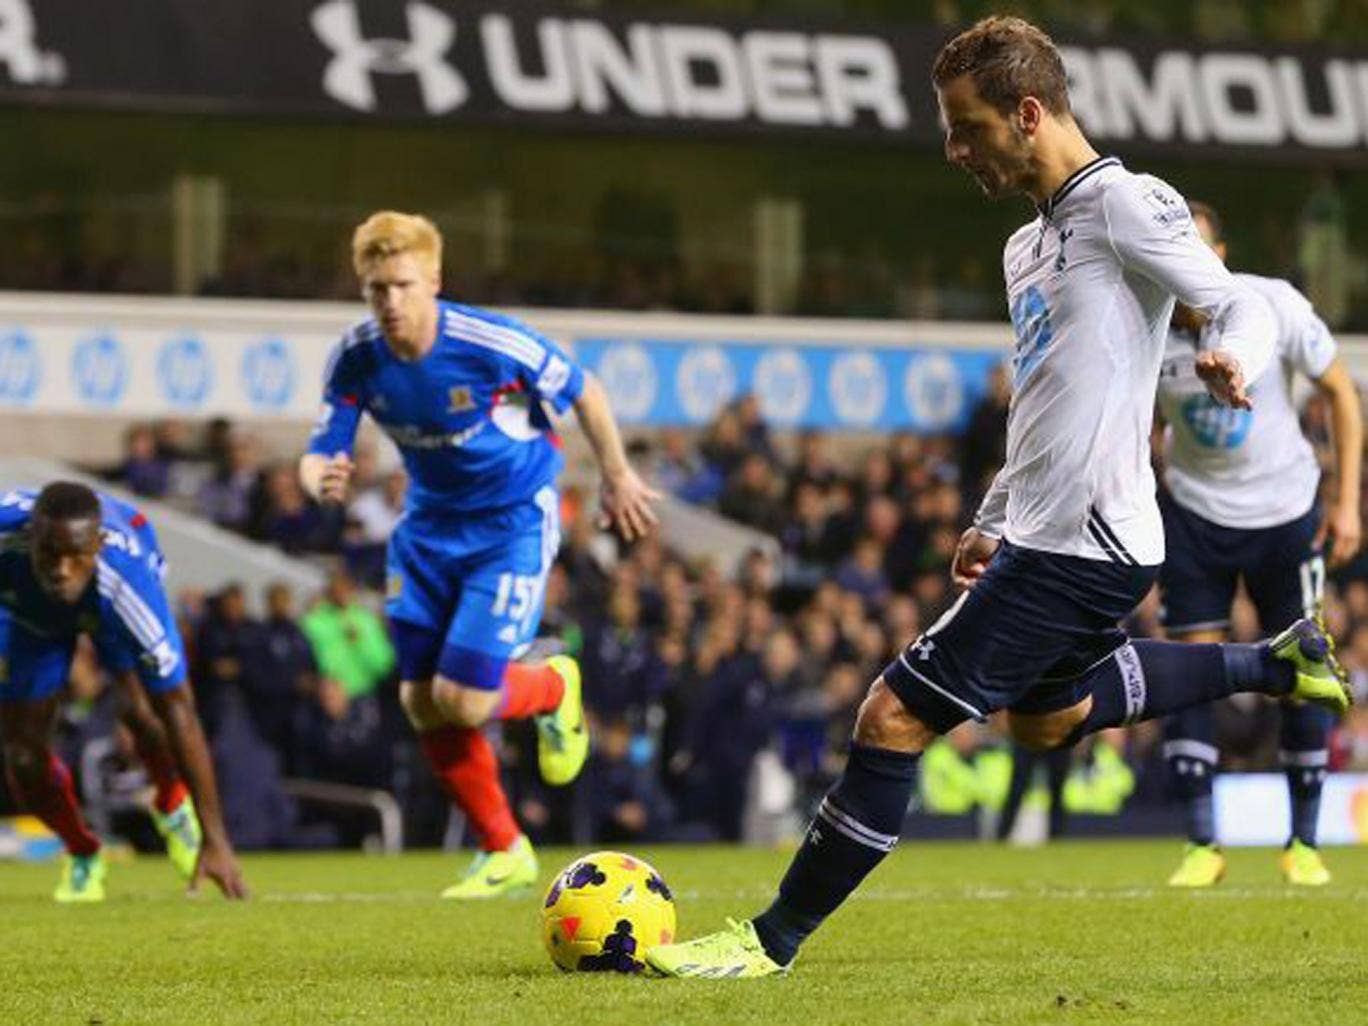 Roberto Soldado scores the only goal of the game from the penalty spot